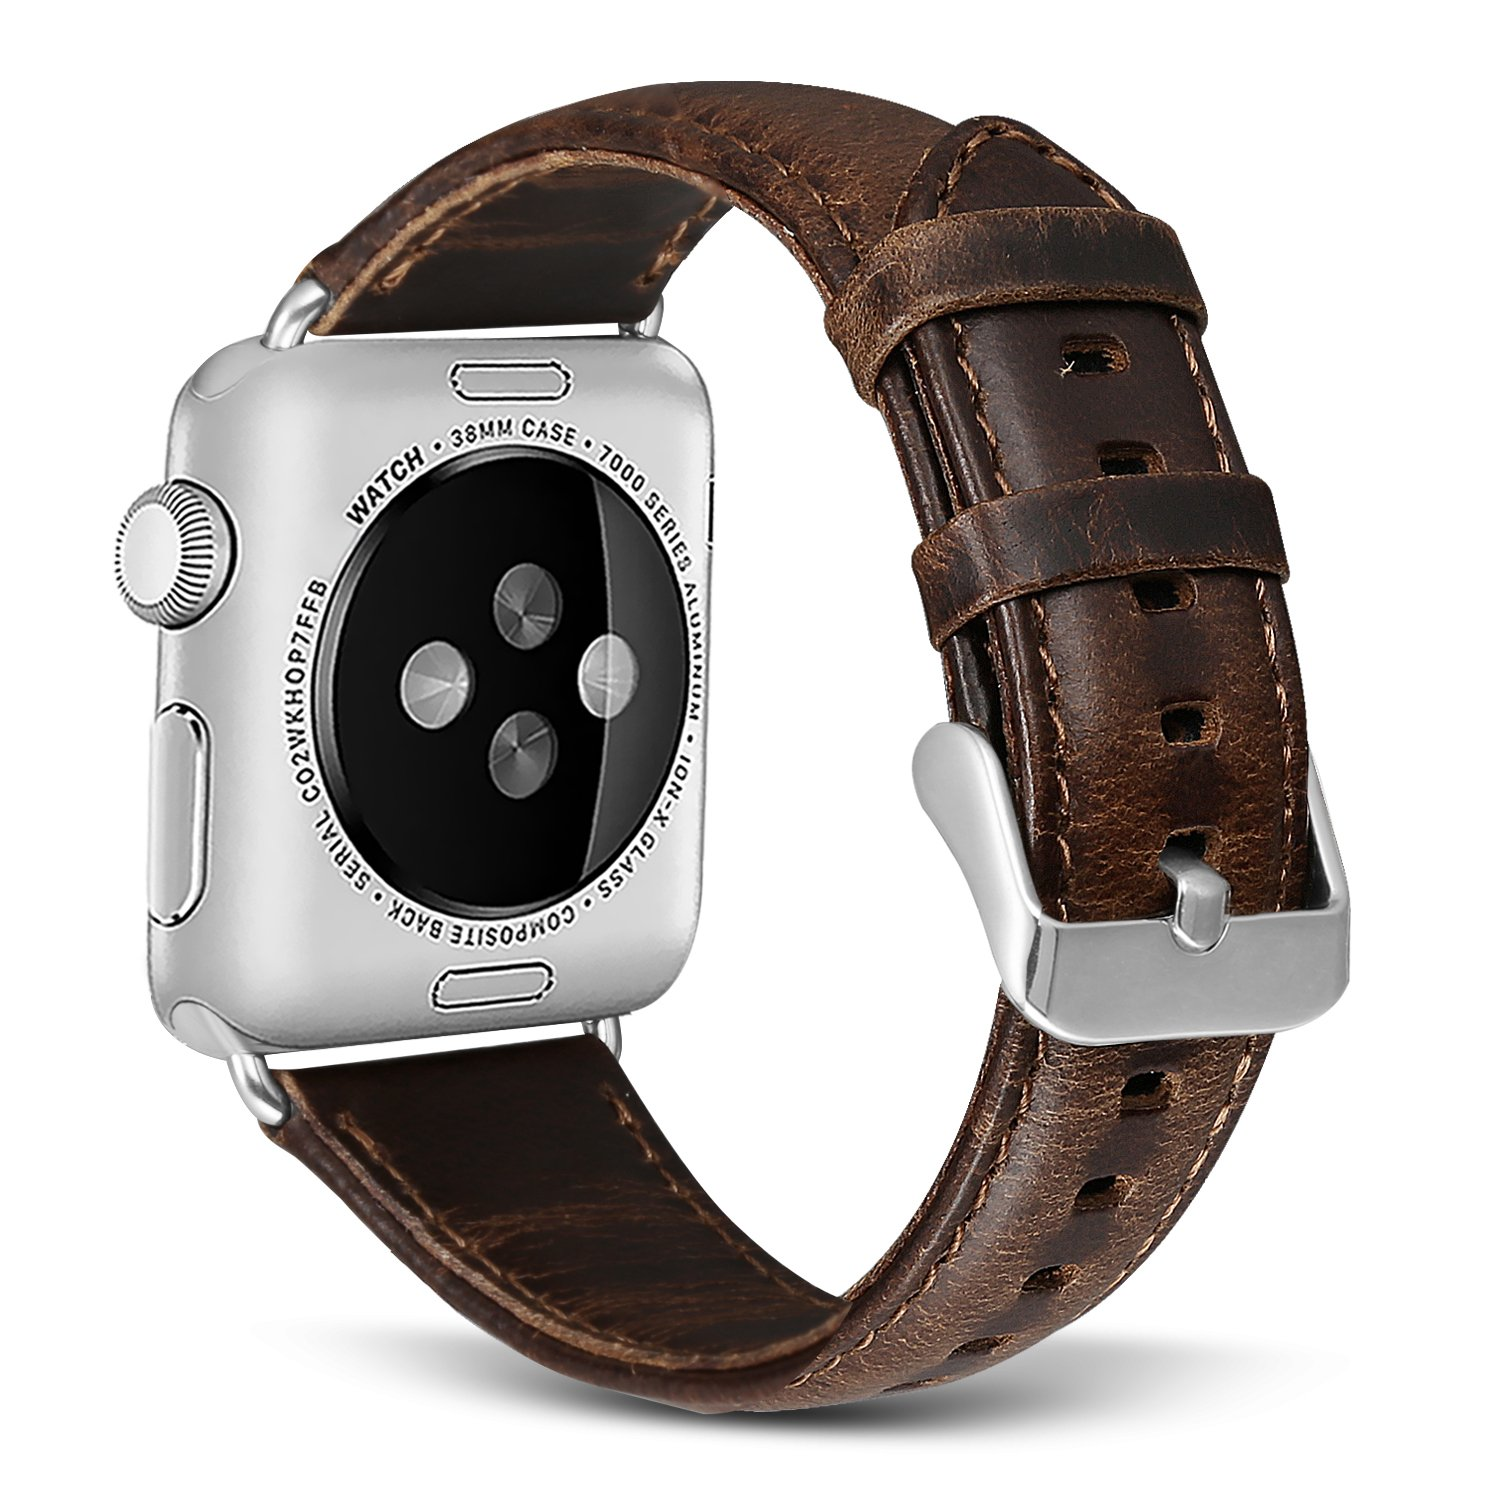 SKYLET Bands Compatible with Apple Watch, 38mm/42mm Retro Genuine Leather Straps with Metal Clasp Compatible with Apple Watch Series 3 Series 1 Series ...